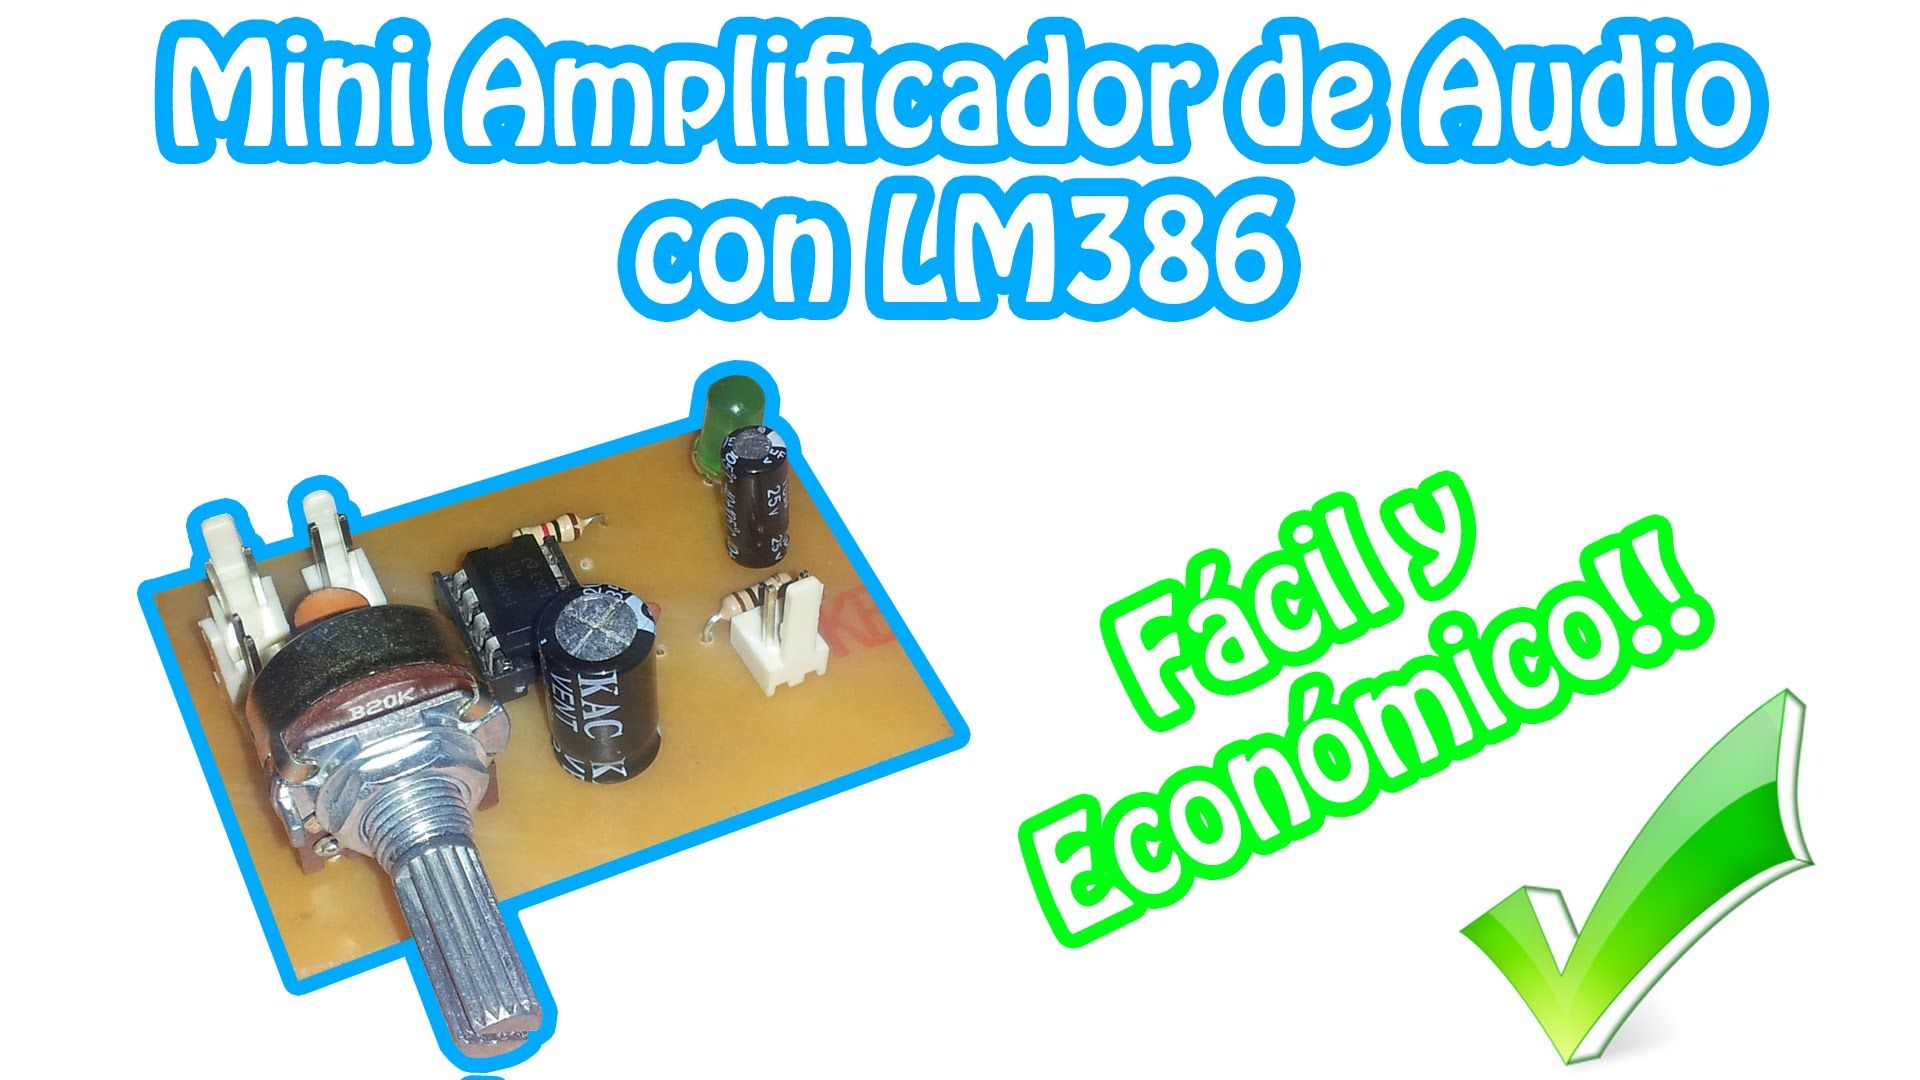 Mini Amplificador De Audio Casero Lm386 Electronica In 2018 Example Of Amplifier Assembly With Lm1875 Suggested By The National Arduino Naruto Shippuden